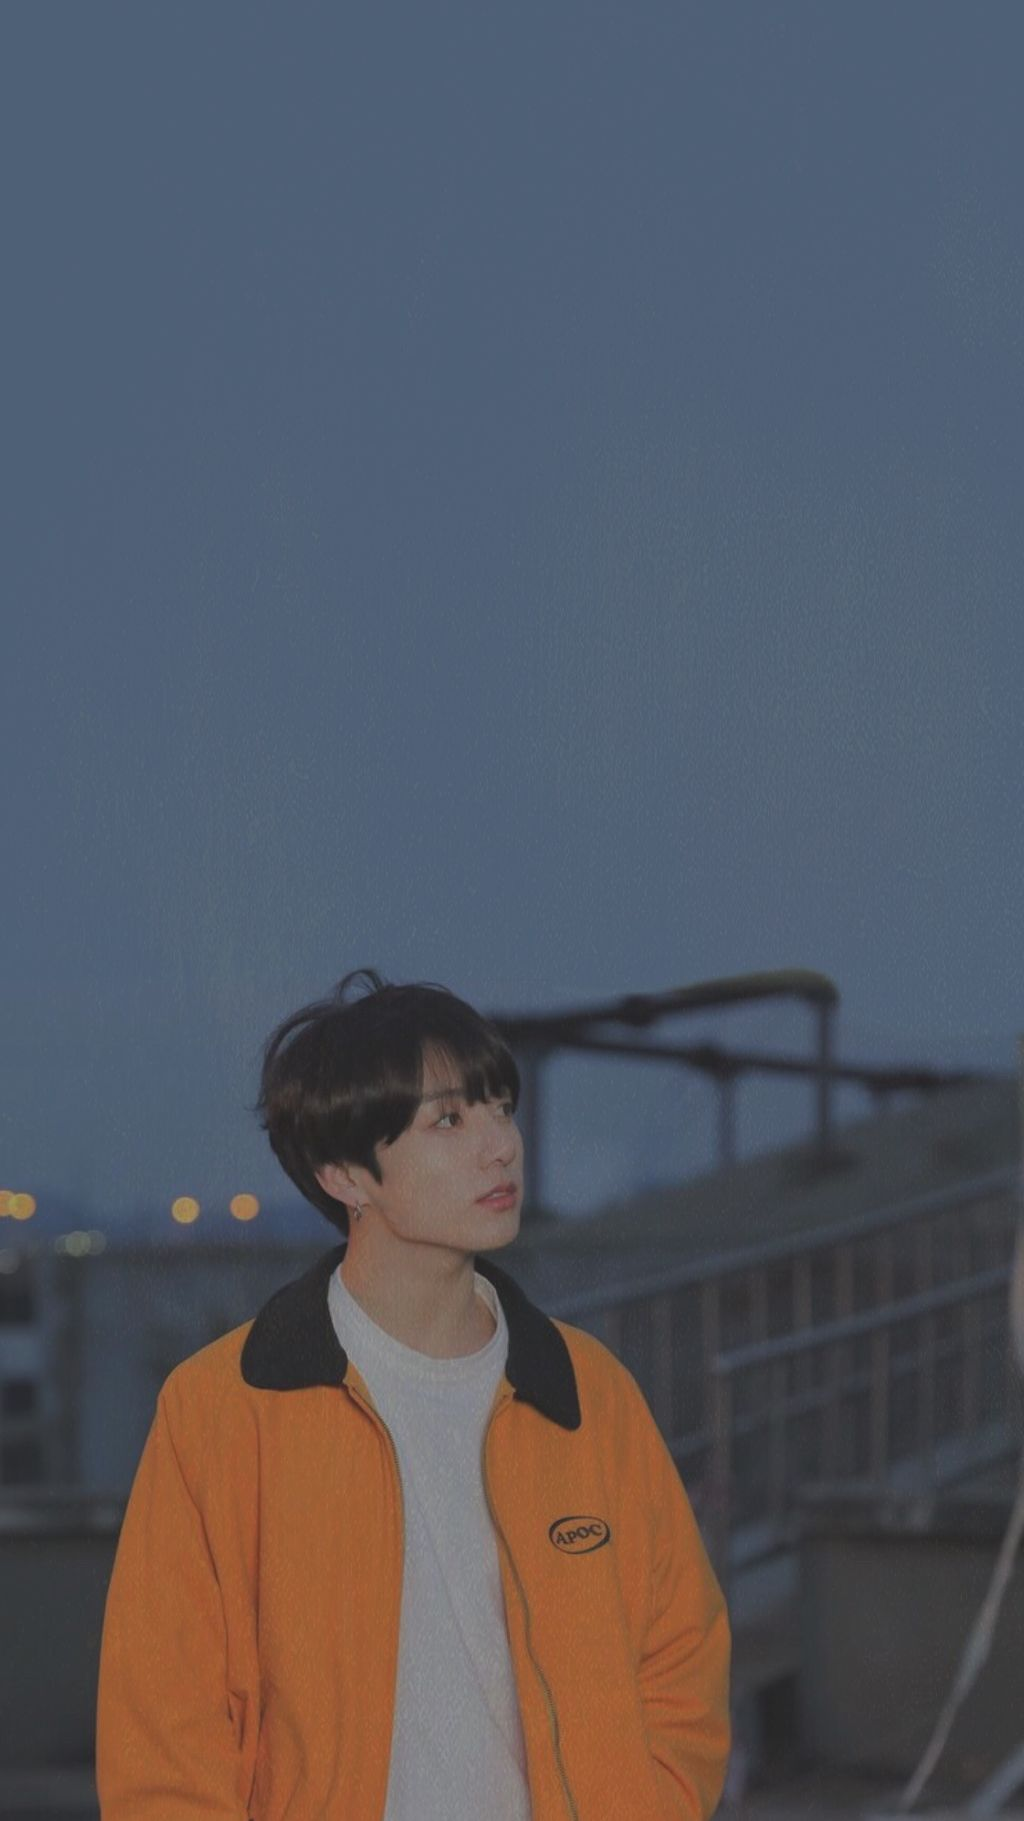 Awesome Aesthetic Bts Jungkook Wallpaper Iphone Images Bts Jungkook Jungkook Aesthetic Iphone Wallpaper Bts Bts jungkook wallpaper tumblr